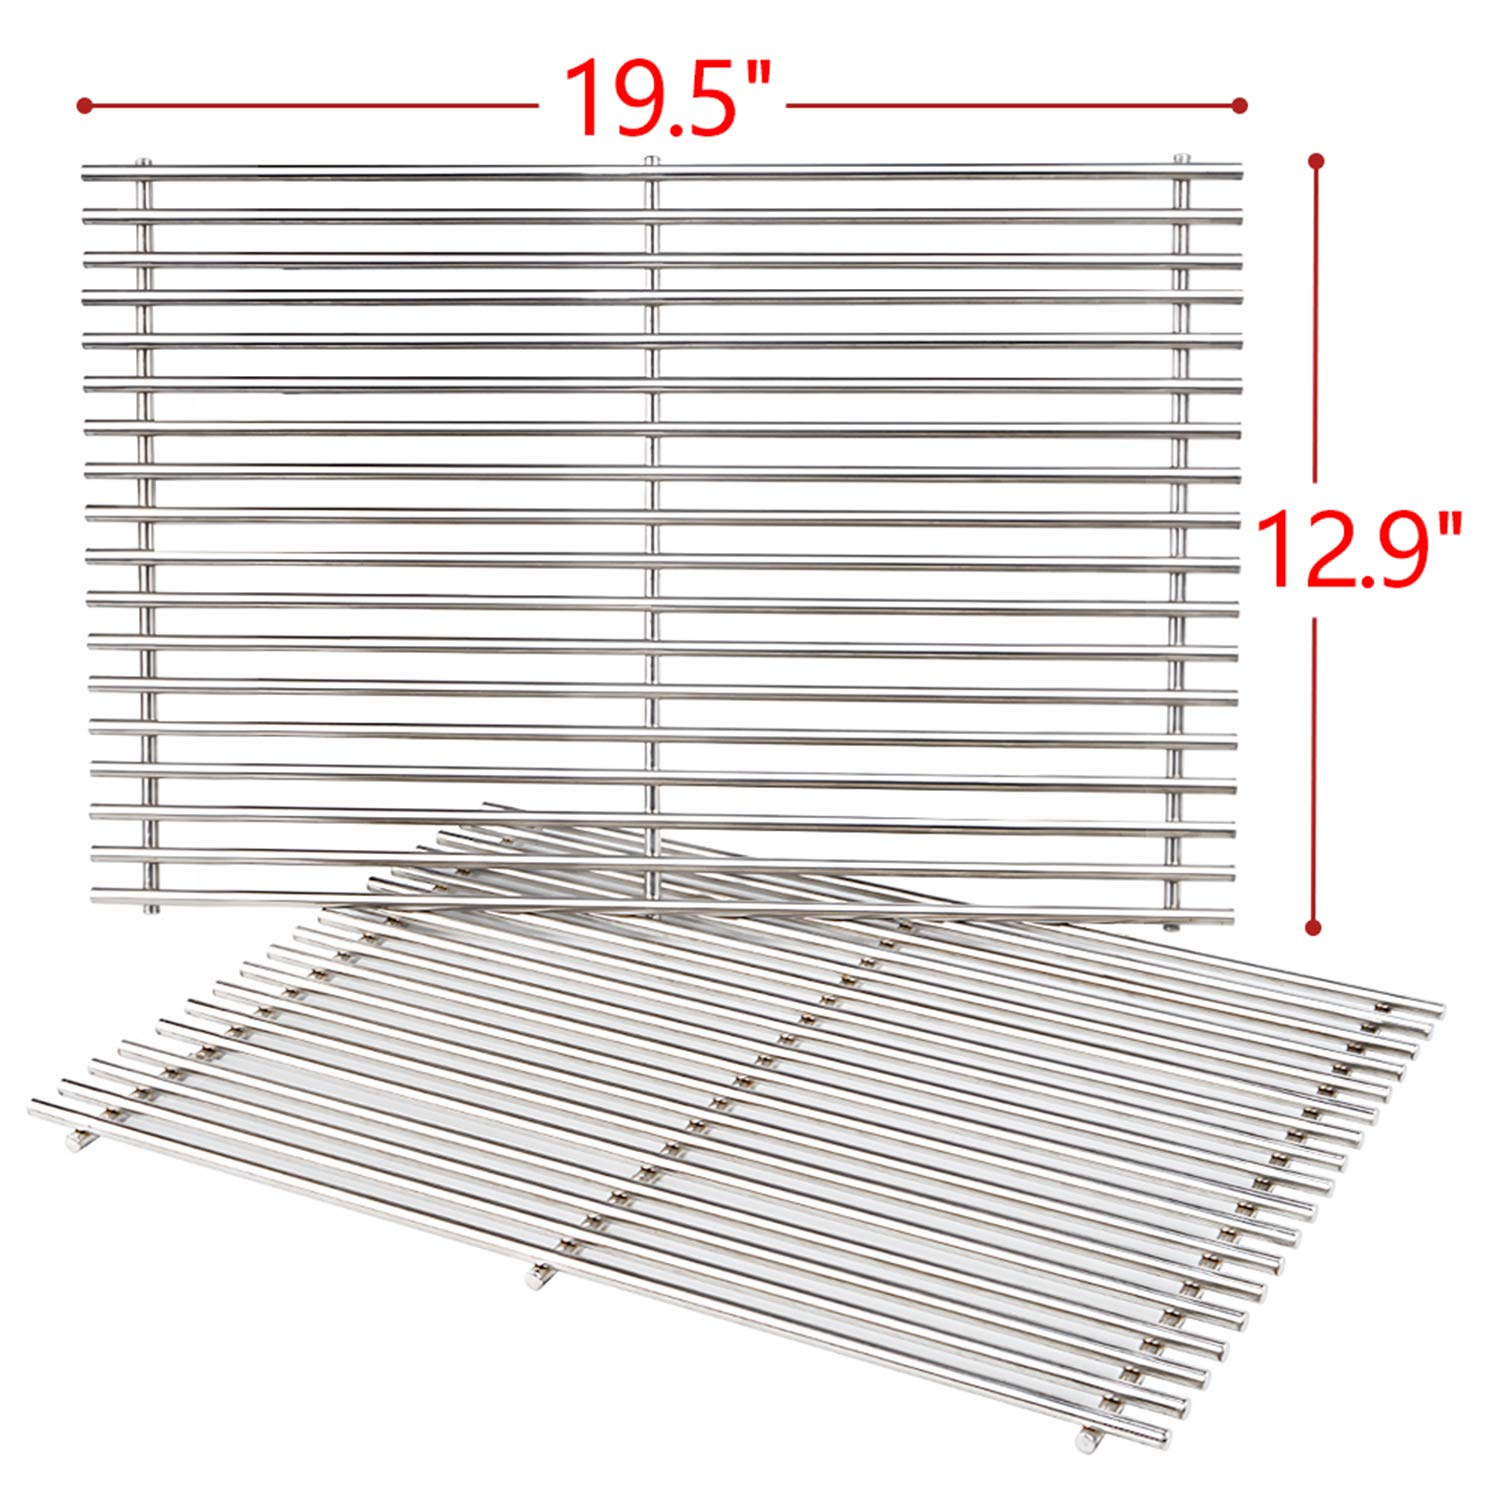 SHINESTAR 19.5-inch Grill Grates Replacement Parts for Weber Genesis 300 Series, Grill Cooking Grates 7528, 7mm Solid Stainless Steel Heavy Duty Grill Grids by SHINESTAR